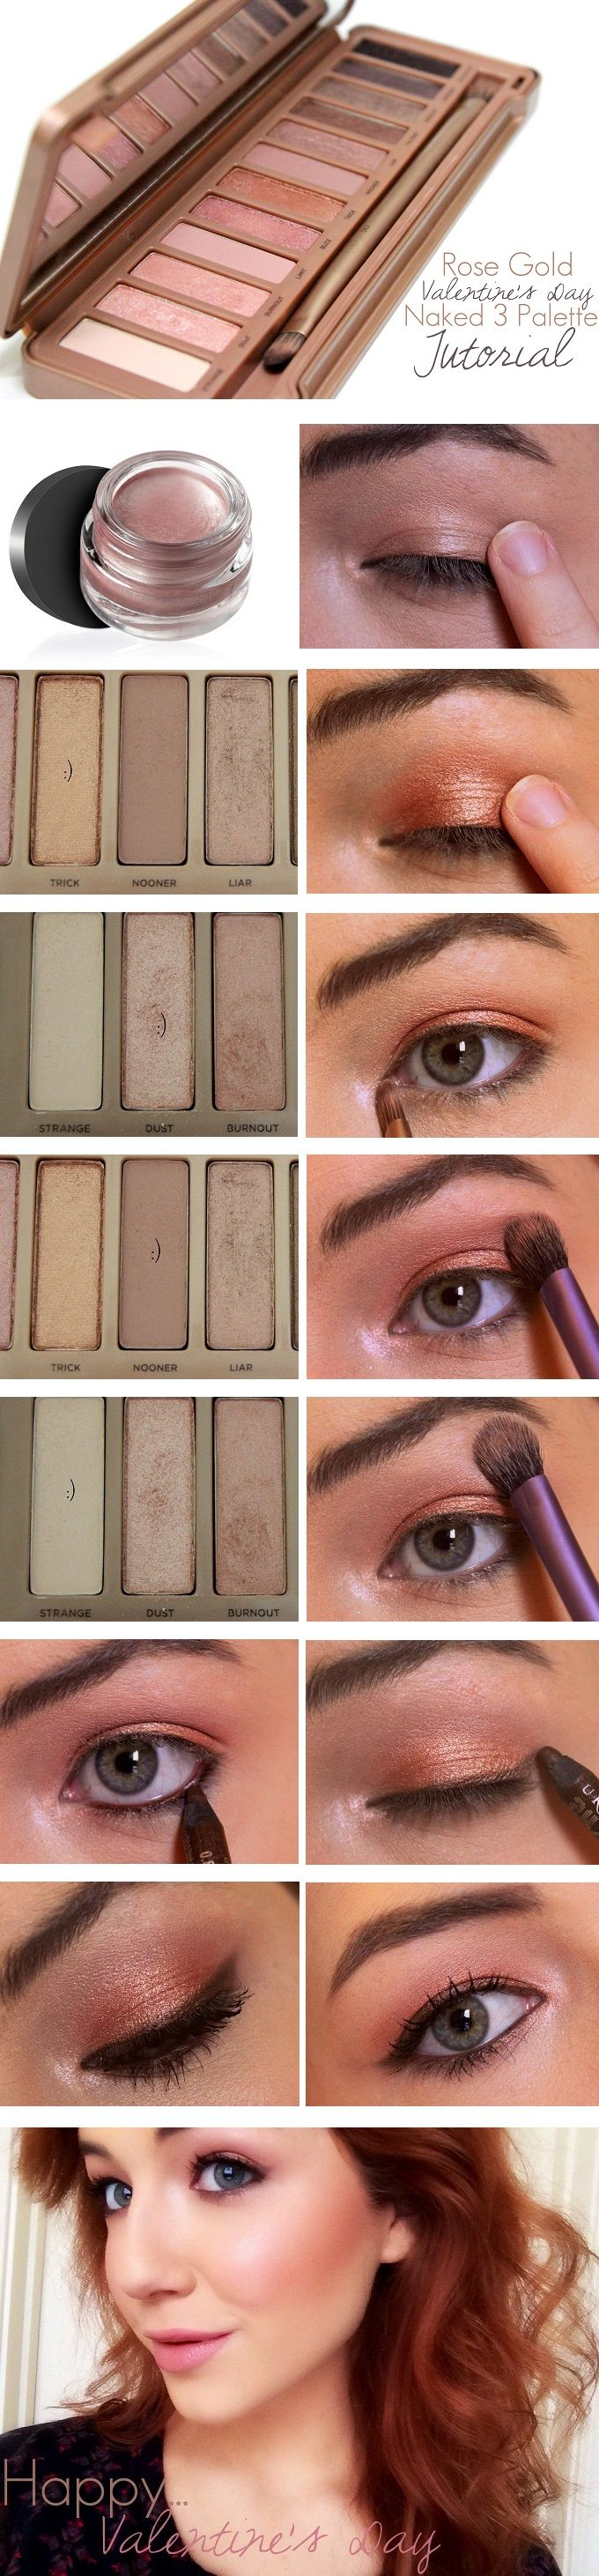 Looking for a soft and romantic Valentine's Day eye look? This soft and romantic rose gold eye using the @Ashley Urban Decay Naked 3 Palette is perfect! | www.loveshelbey.com #naked3palette #nakedpalette #urbandecaycosmetics